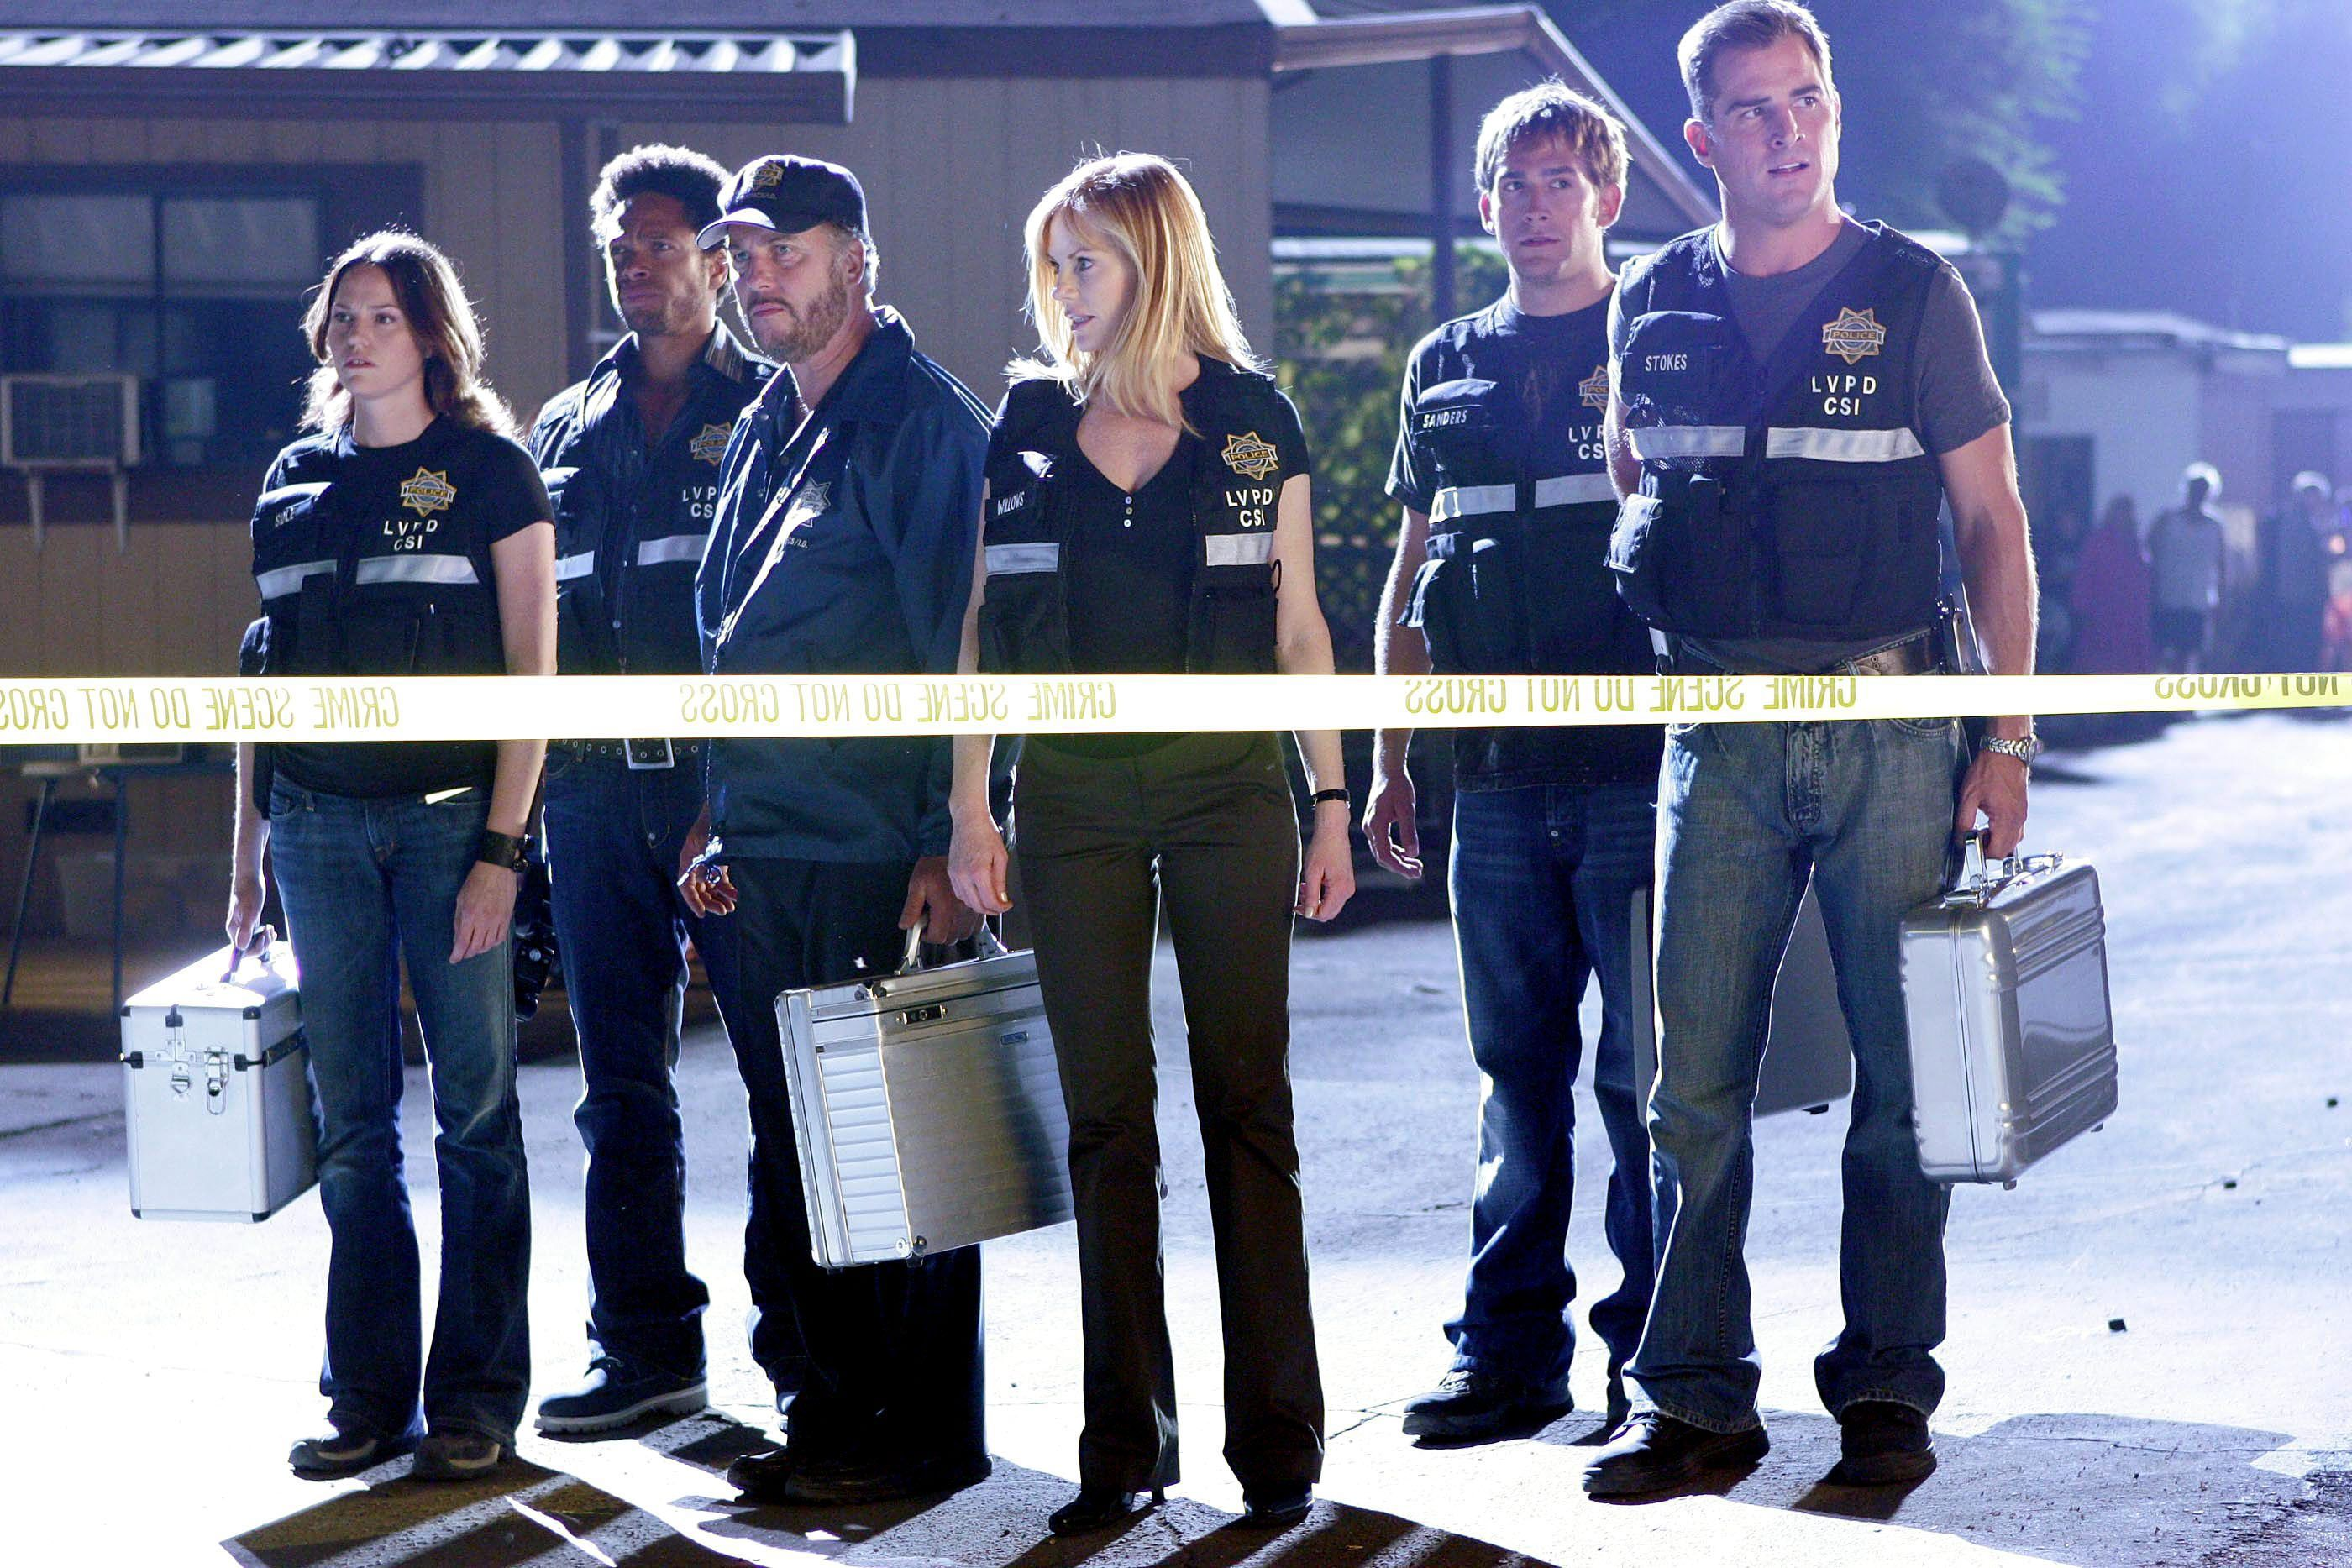 """'CSI' Revival Series Reportedly In """"Very Early Development Stages"""" At CBS - Fame10"""